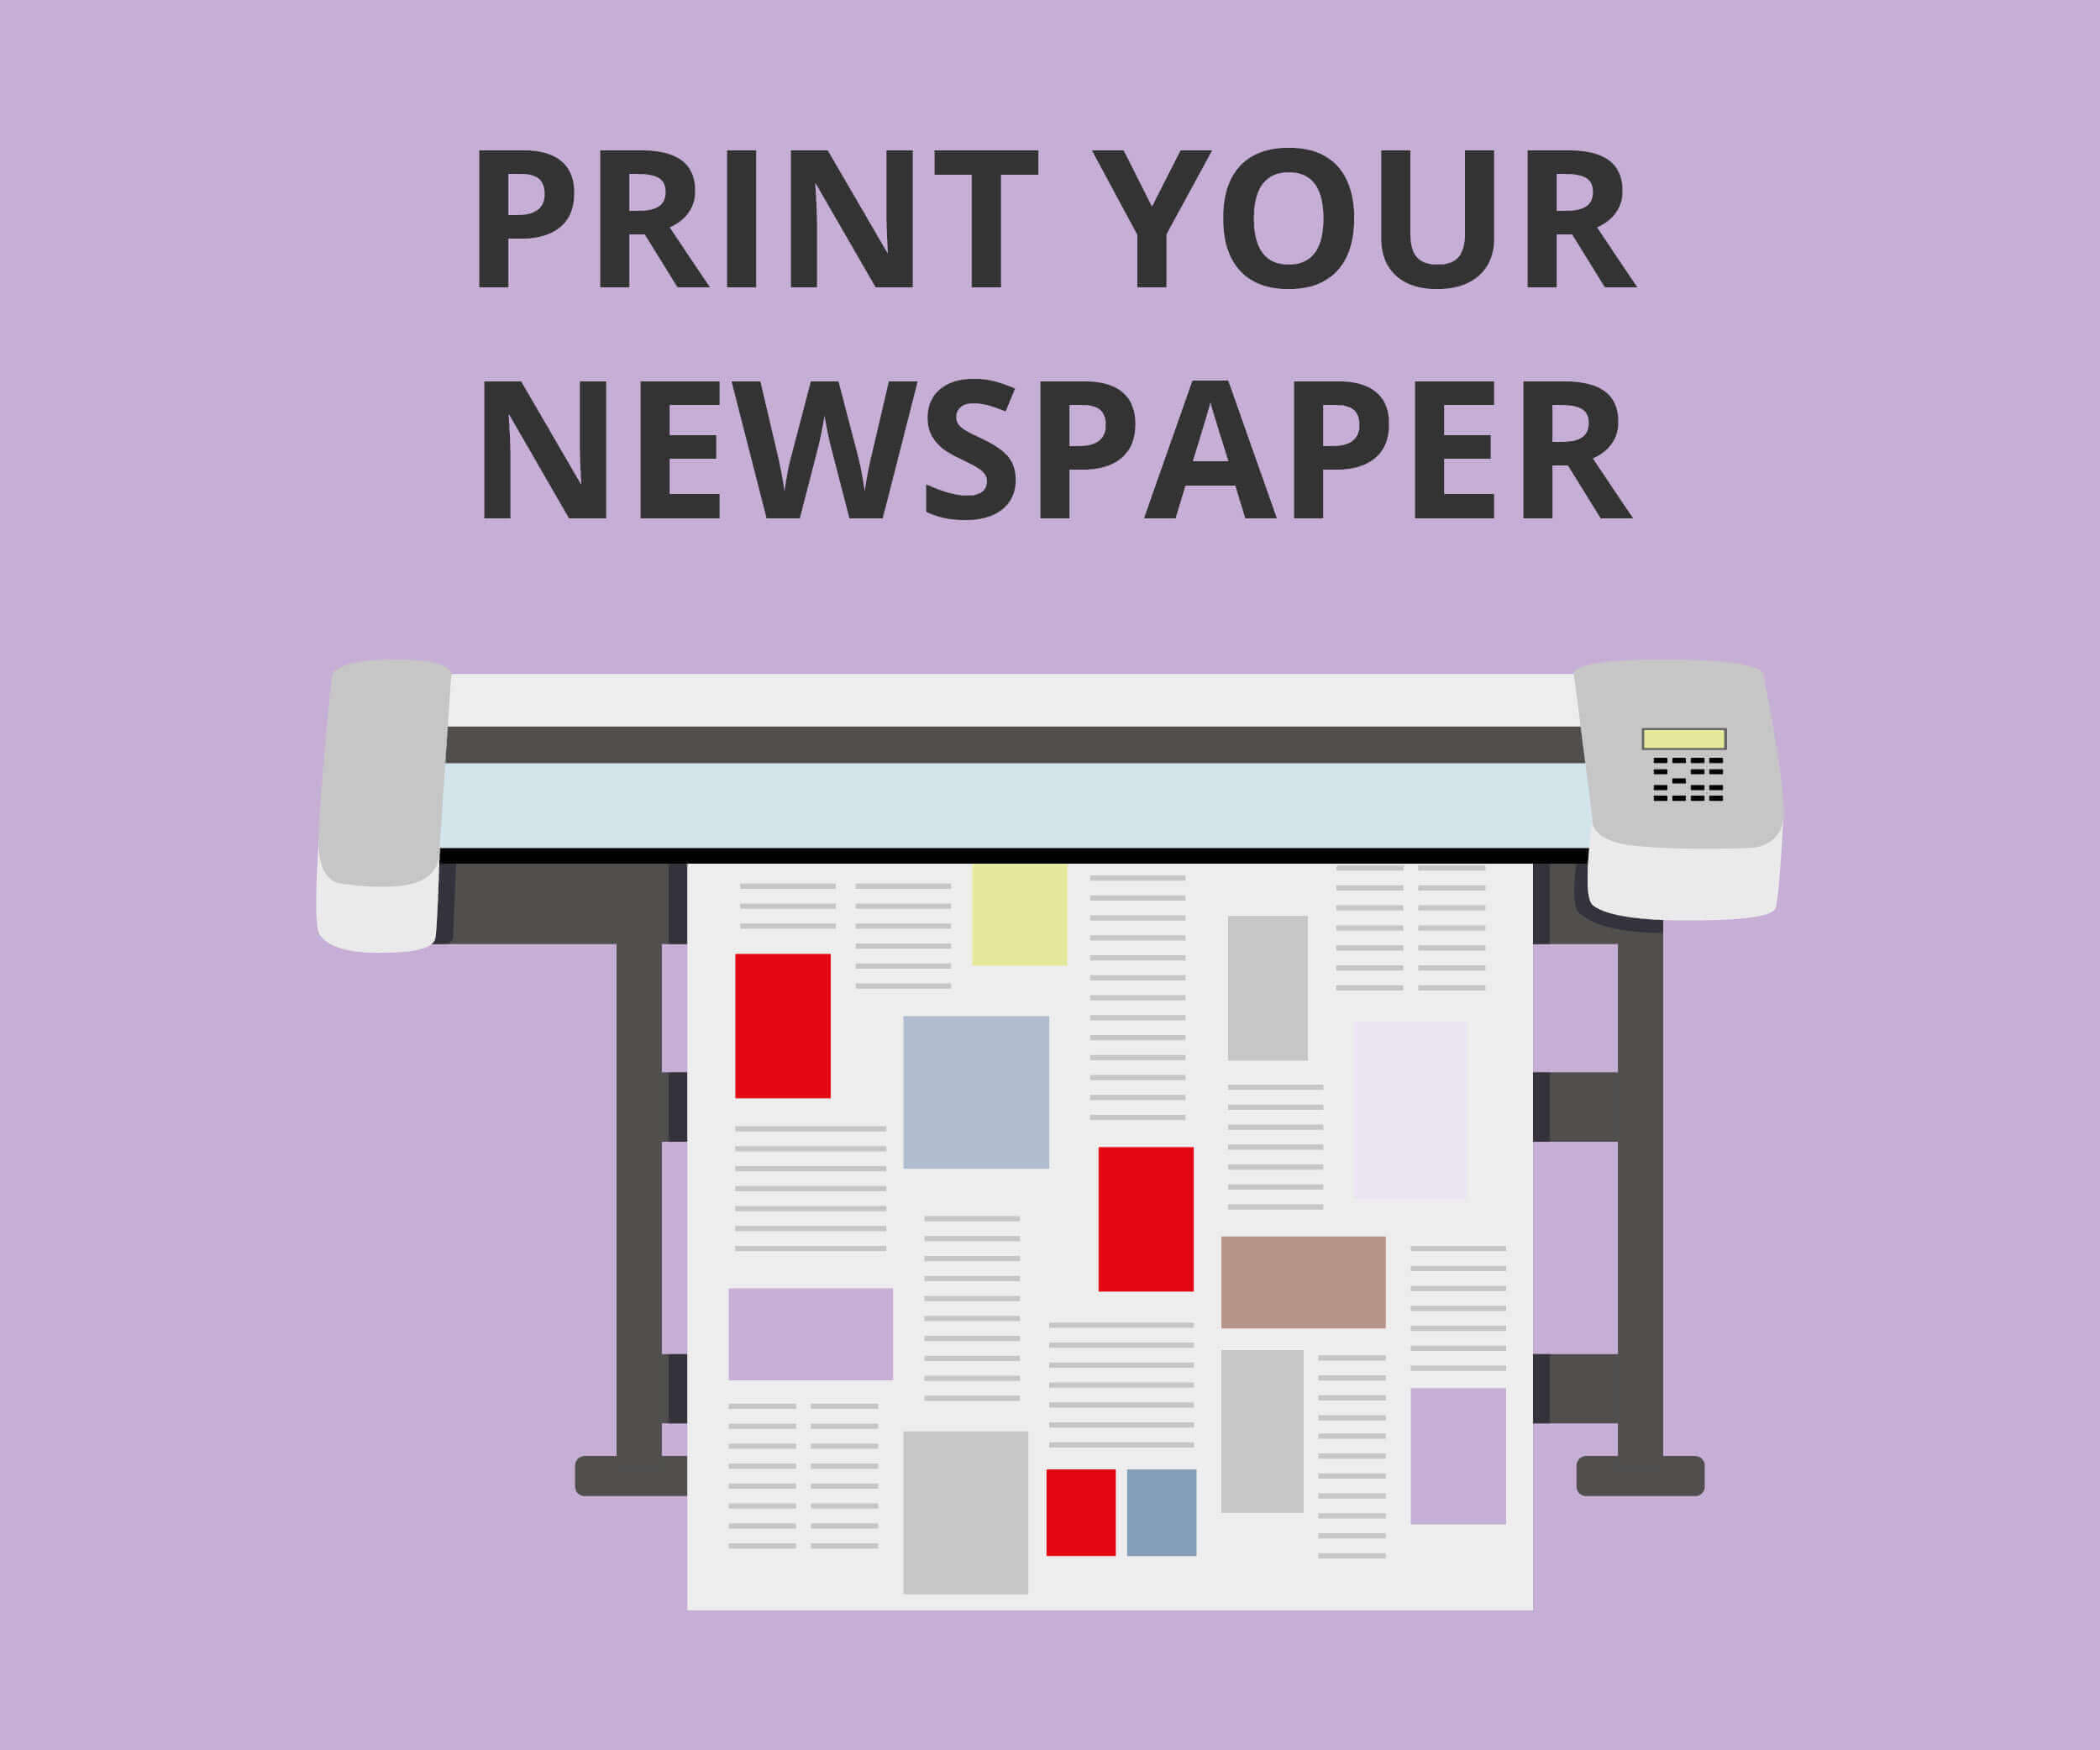 Print your own newspaper